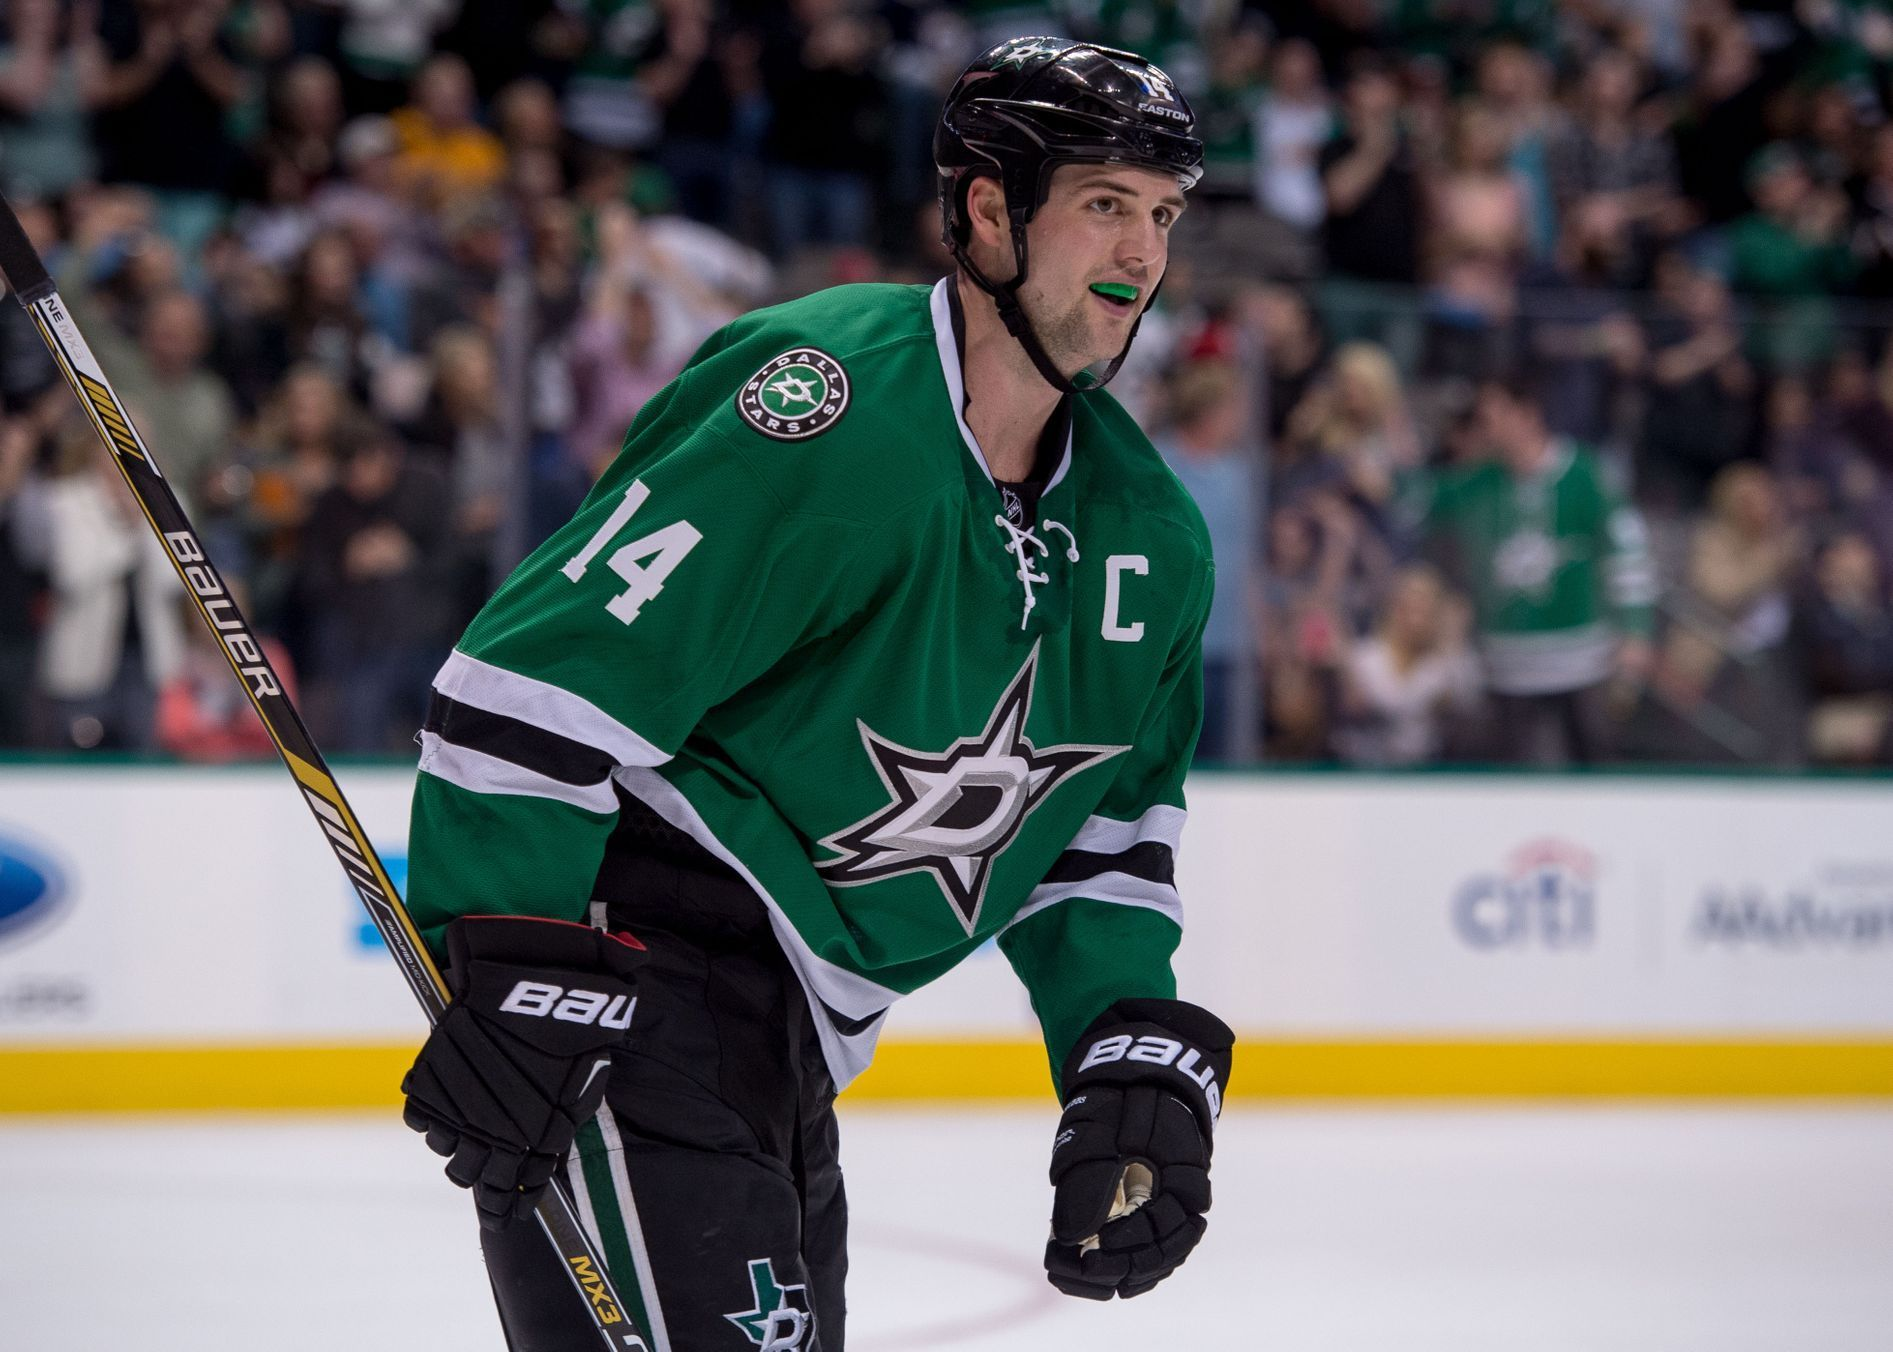 Jamie Benn (Dallas Stars) v NHL 2014-15